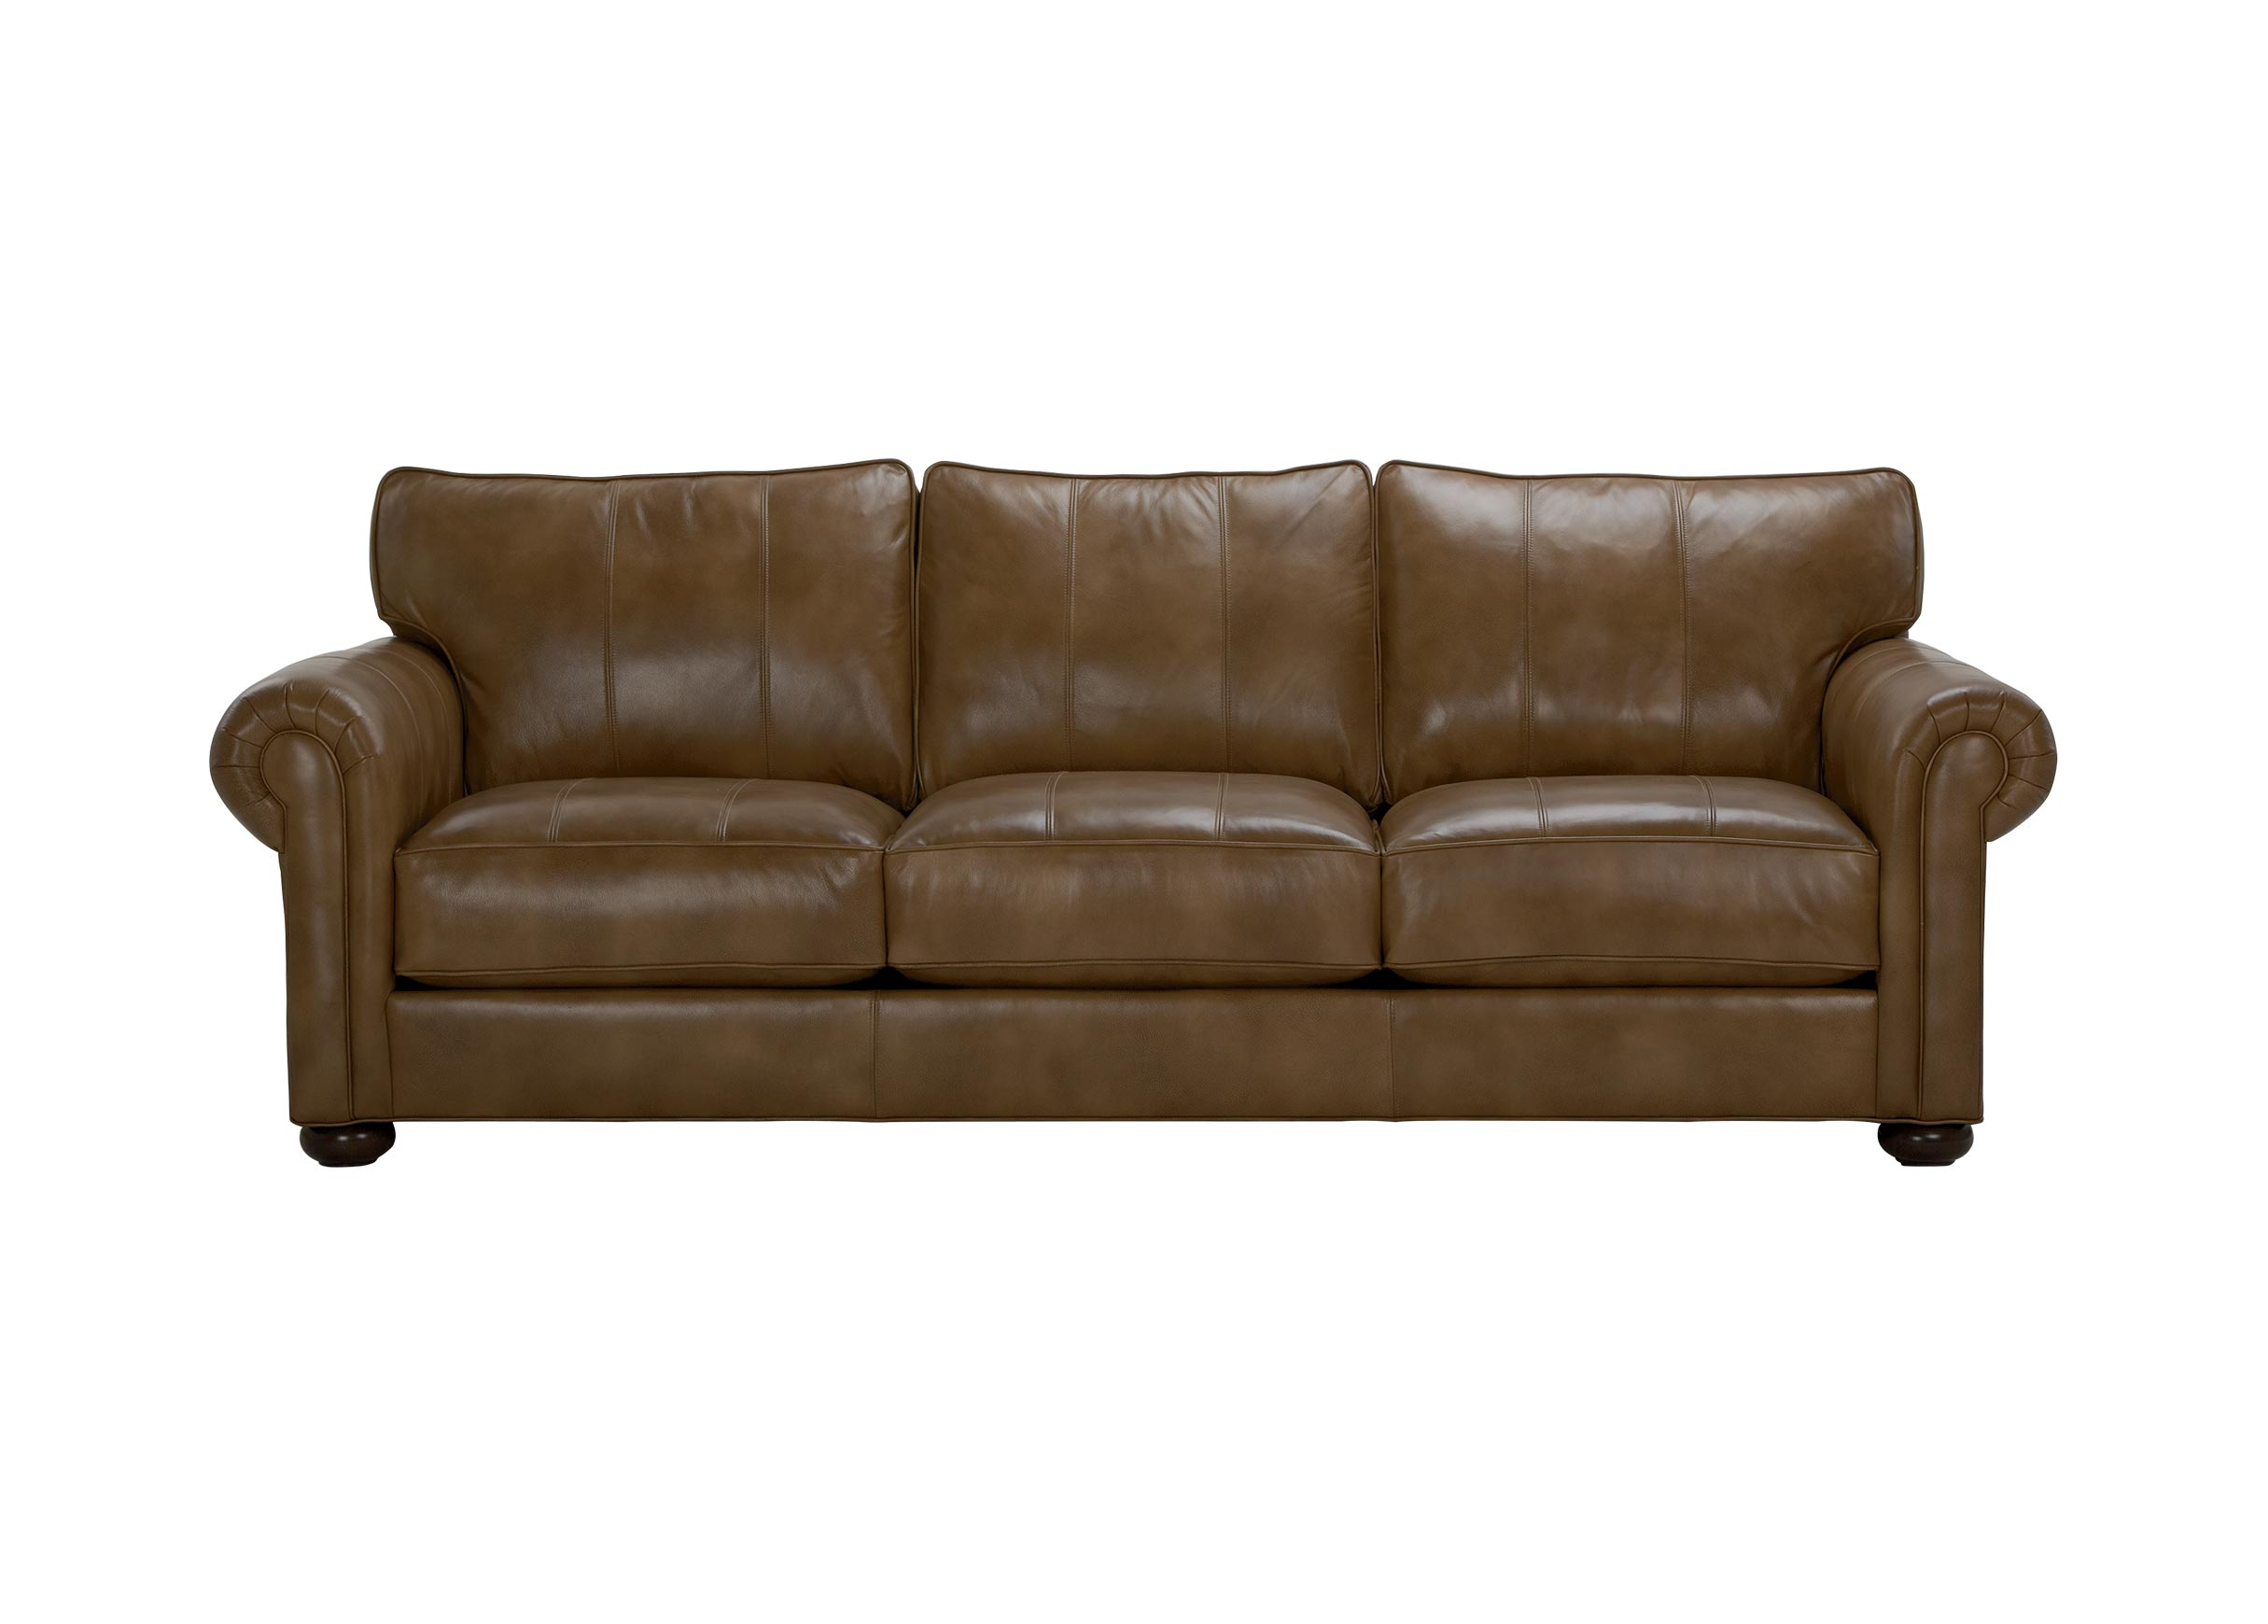 richmond leather sofa sofas loveseats ethan allen. Black Bedroom Furniture Sets. Home Design Ideas